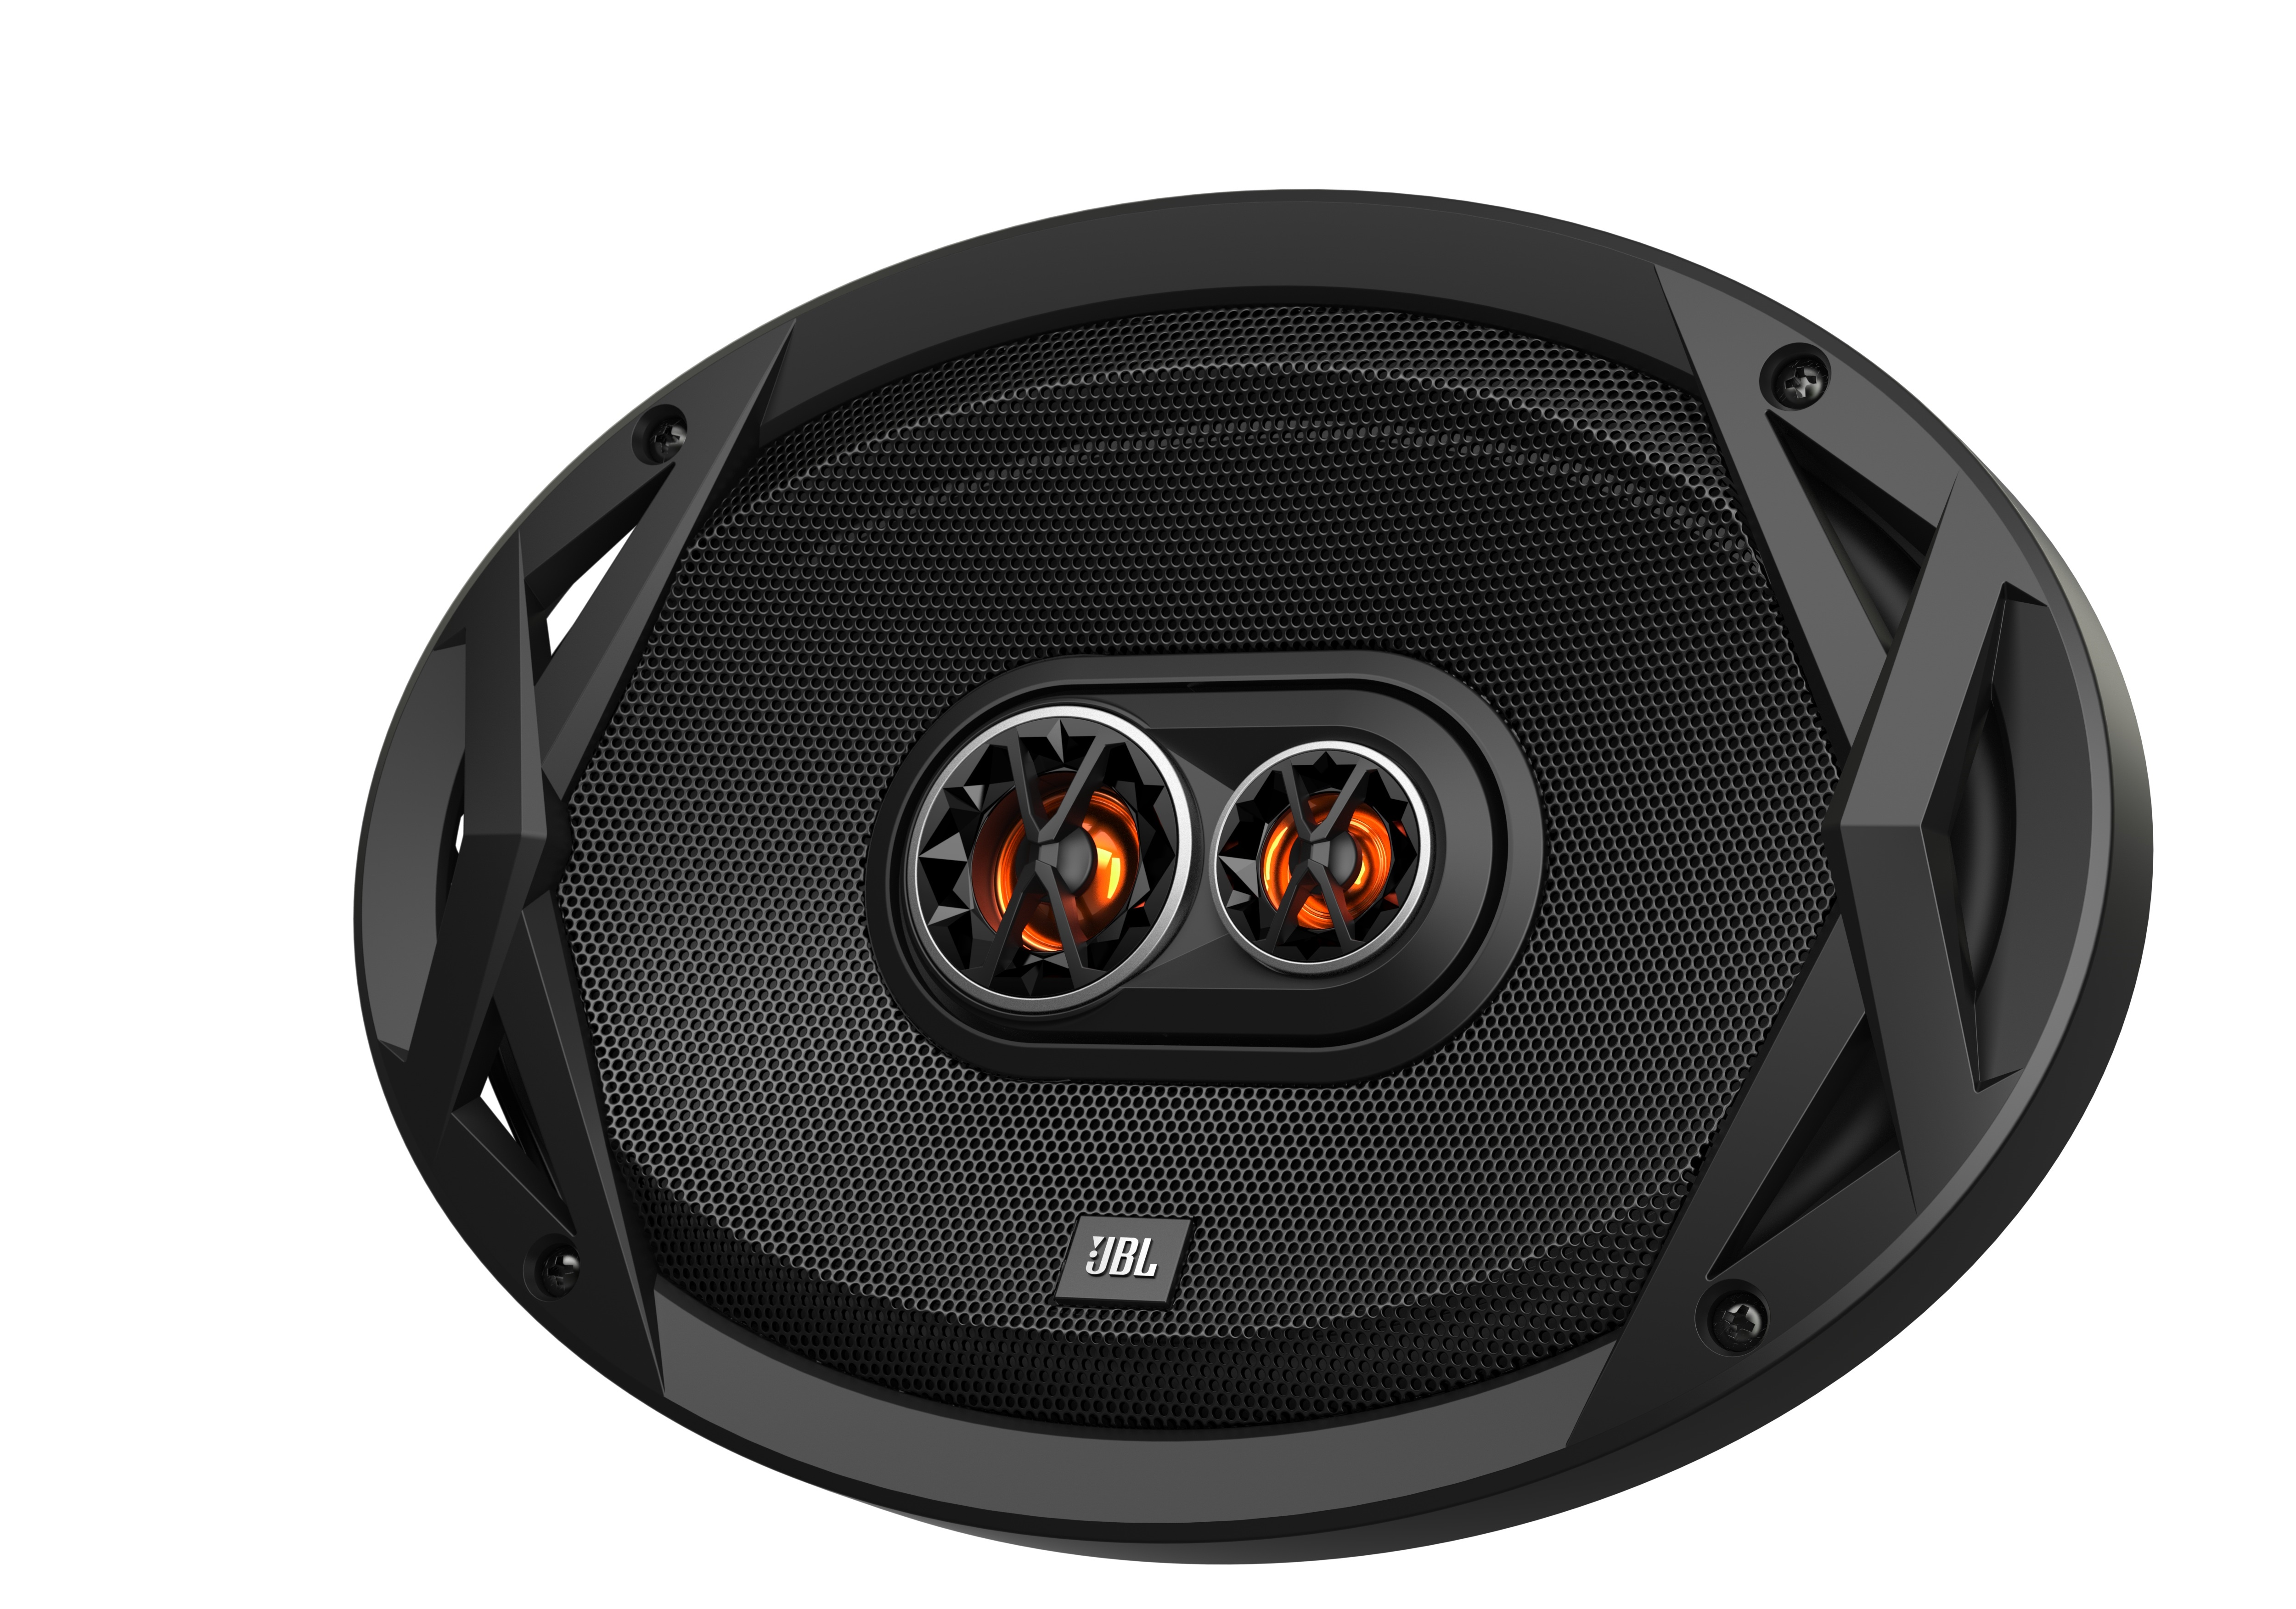 Jbl Introduces Club Series Speaker And Amplifier Line For